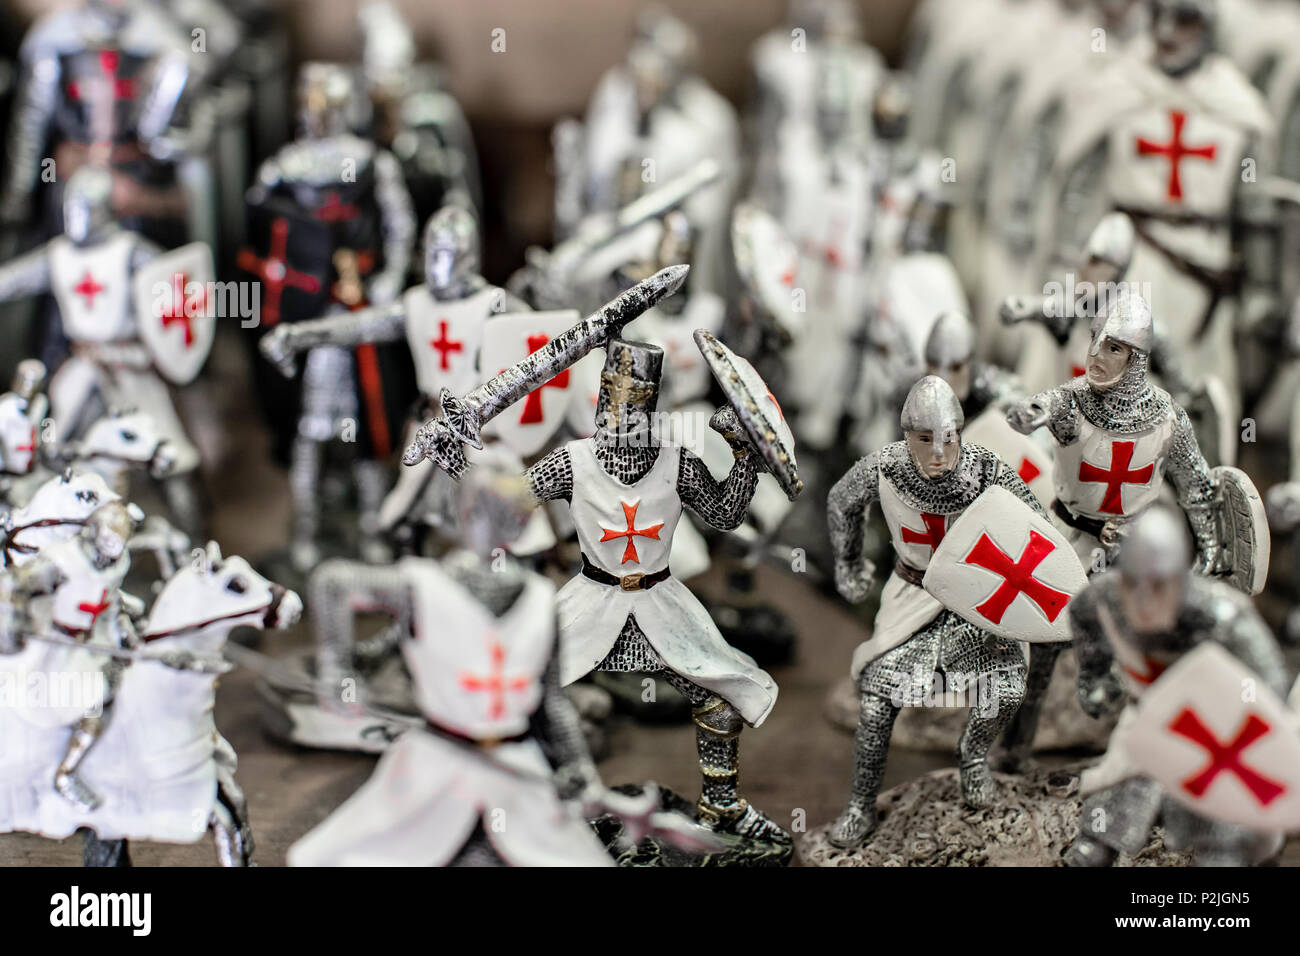 Obidos, Portugal - May 18, 2018: A collection of toy knights